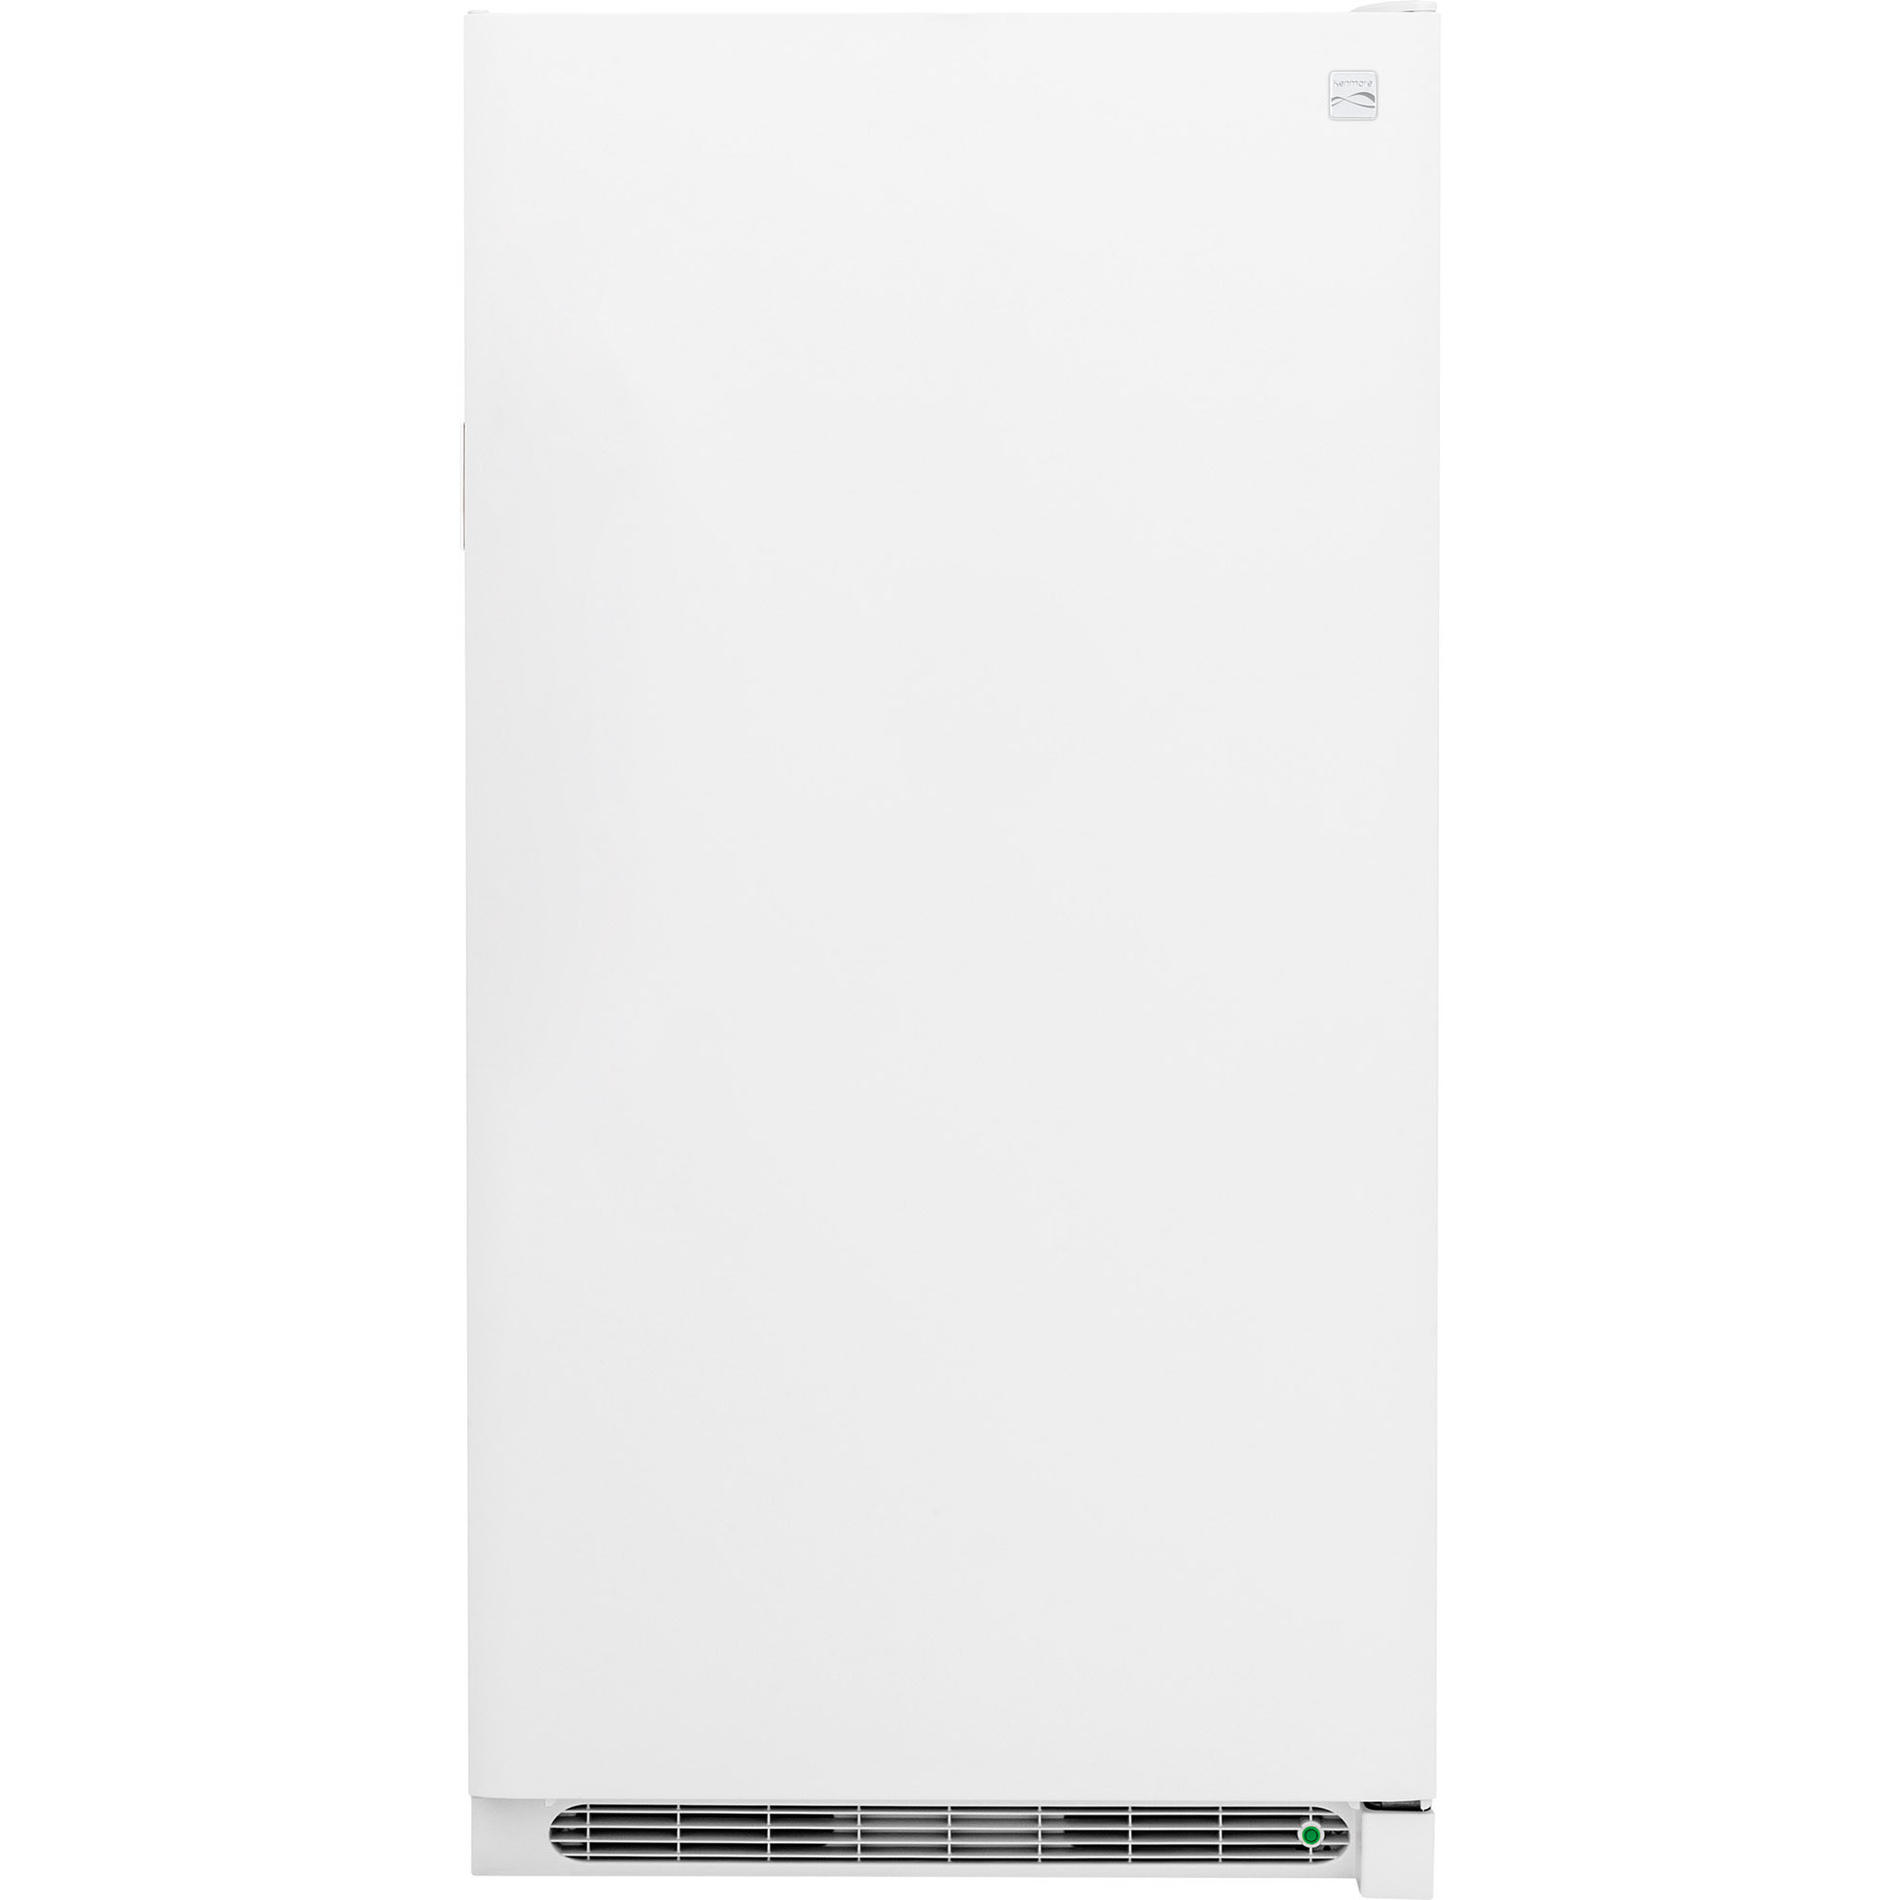 Kenmore 21742 17.3 cu. ft. Upright Freezer - White